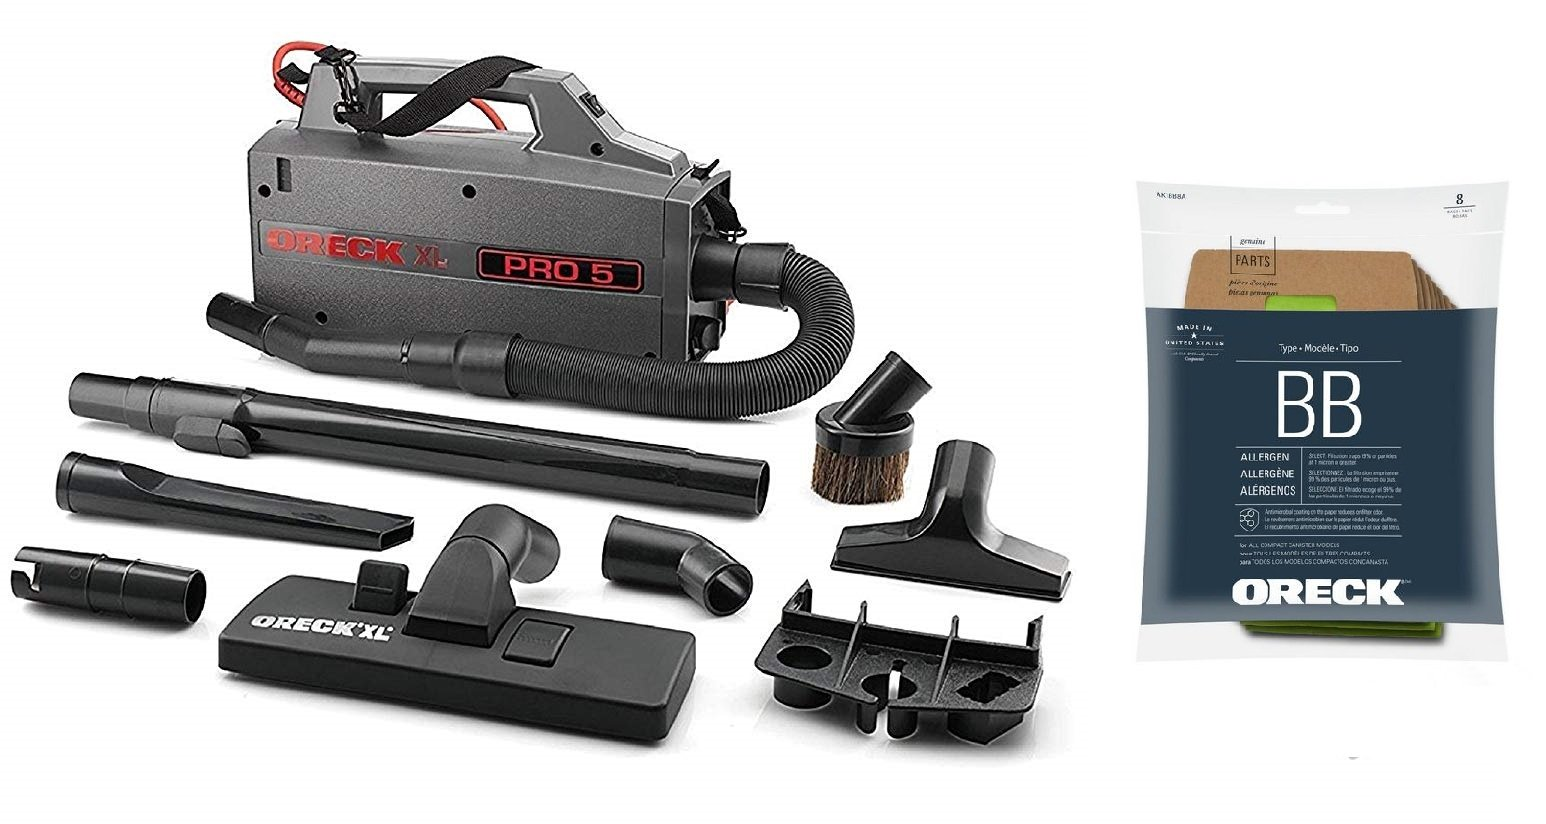 Oreck Commercial BB900DGR XL Pro 5 Super Compact Canister Vacuum, 30 Power Cord with